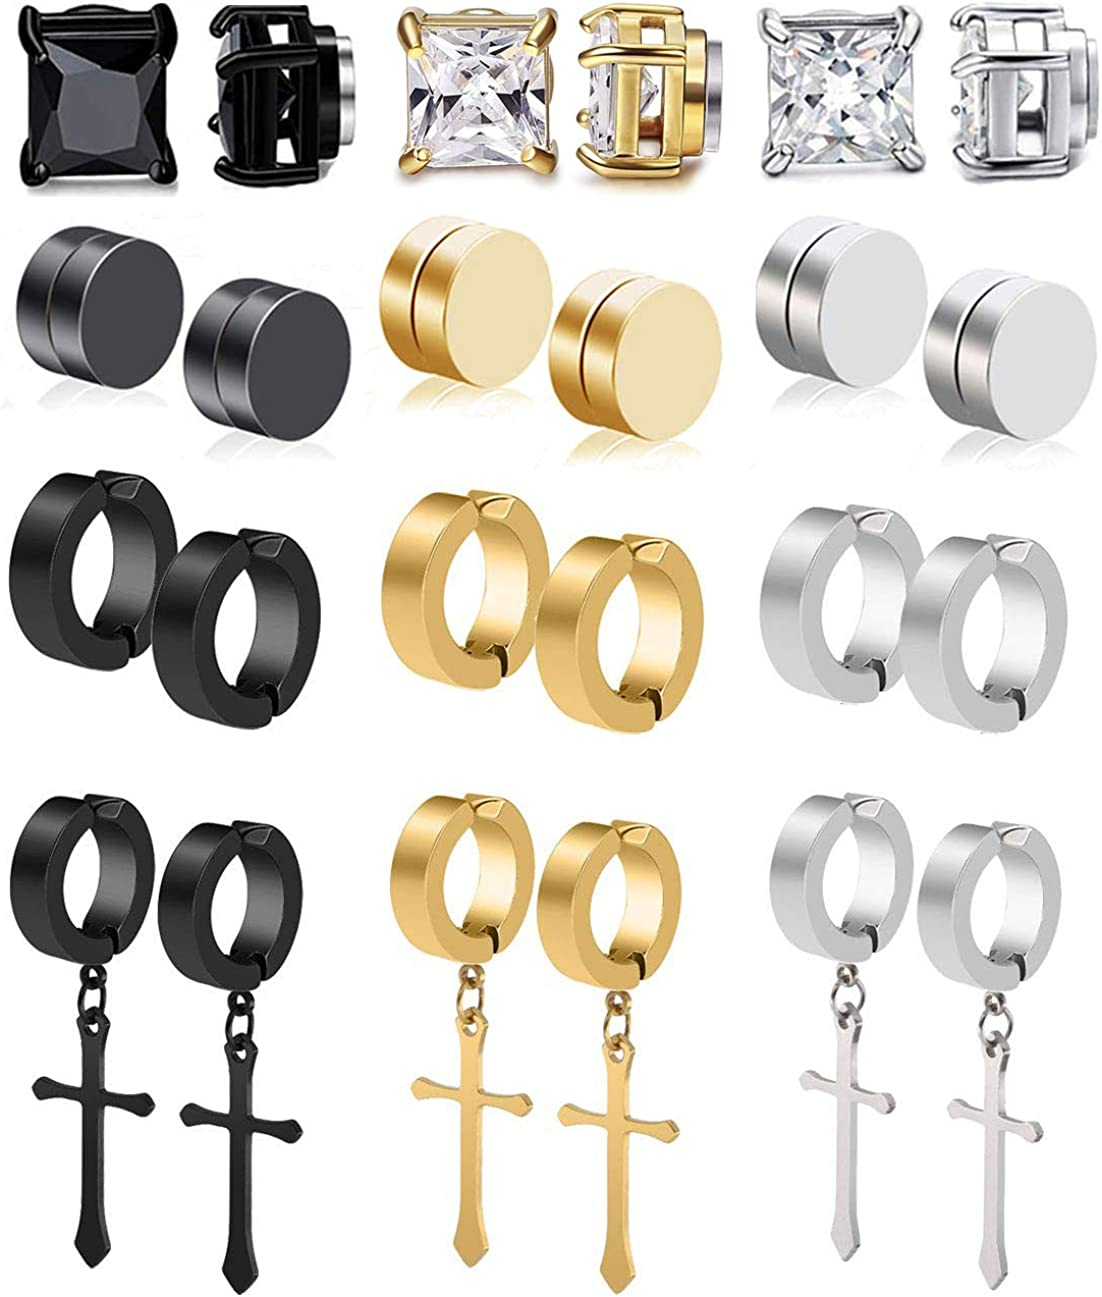 CARSHIER 12 Pairs Stainless Steel Clip On Non-Pierced Earrings for Mens Womens Magnetic CZ Earrings Dangle Earrings Set